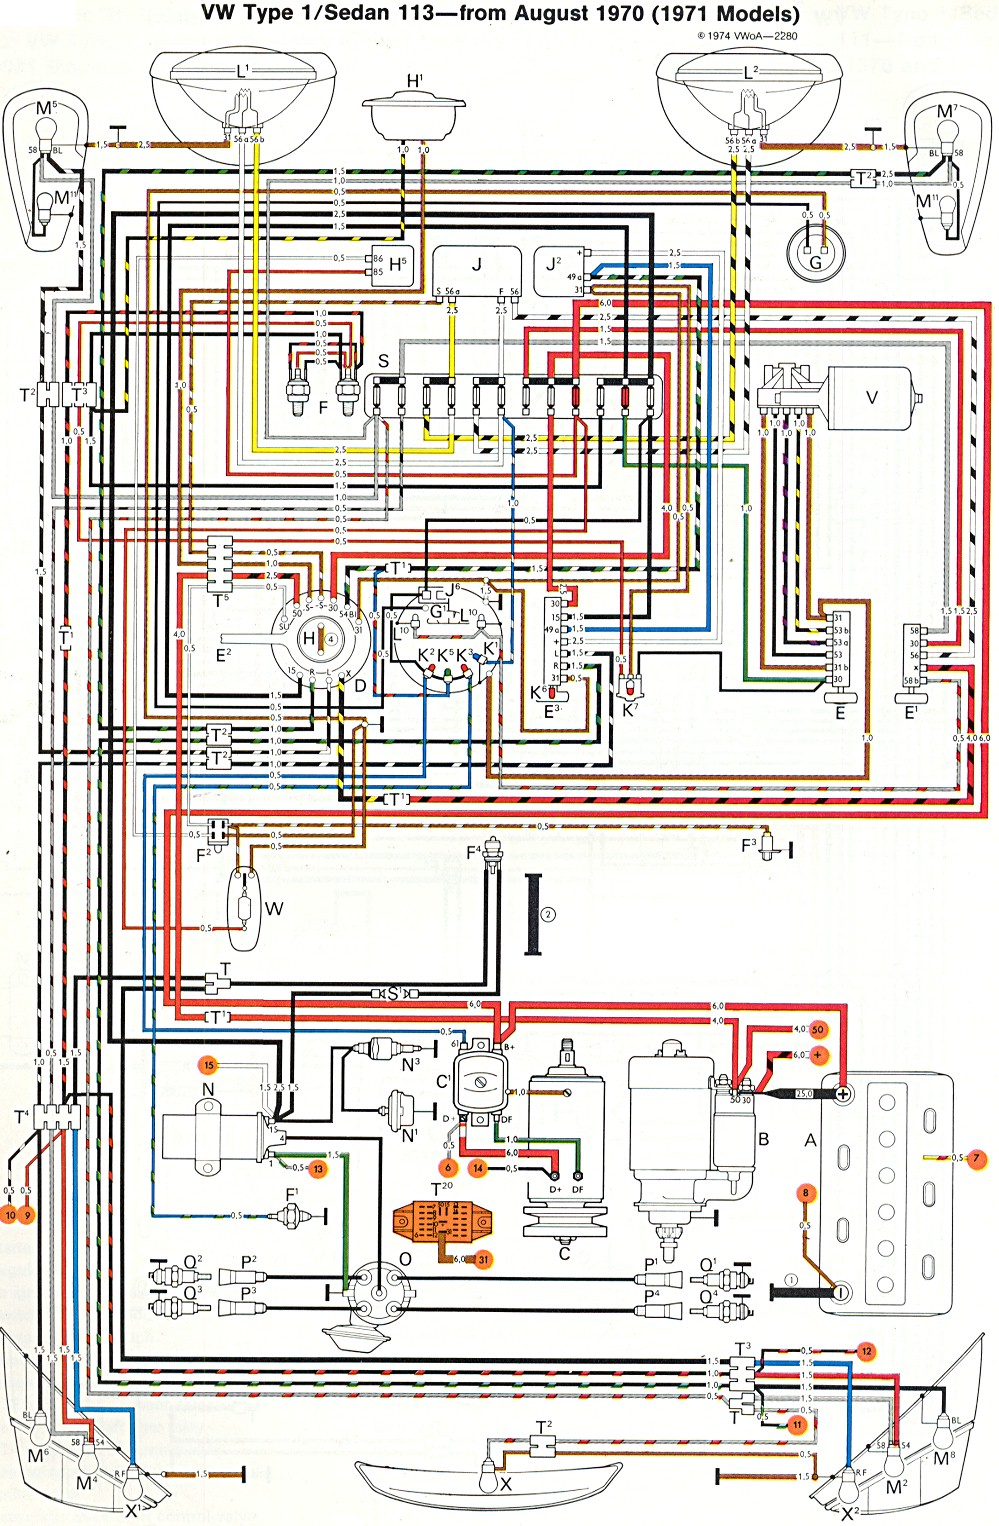 bug_super_71 vw bug wiring 1969 vw starter wiring diagram \u2022 wiring diagrams j 2000 vw beetle headlight wiring harness at webbmarketing.co